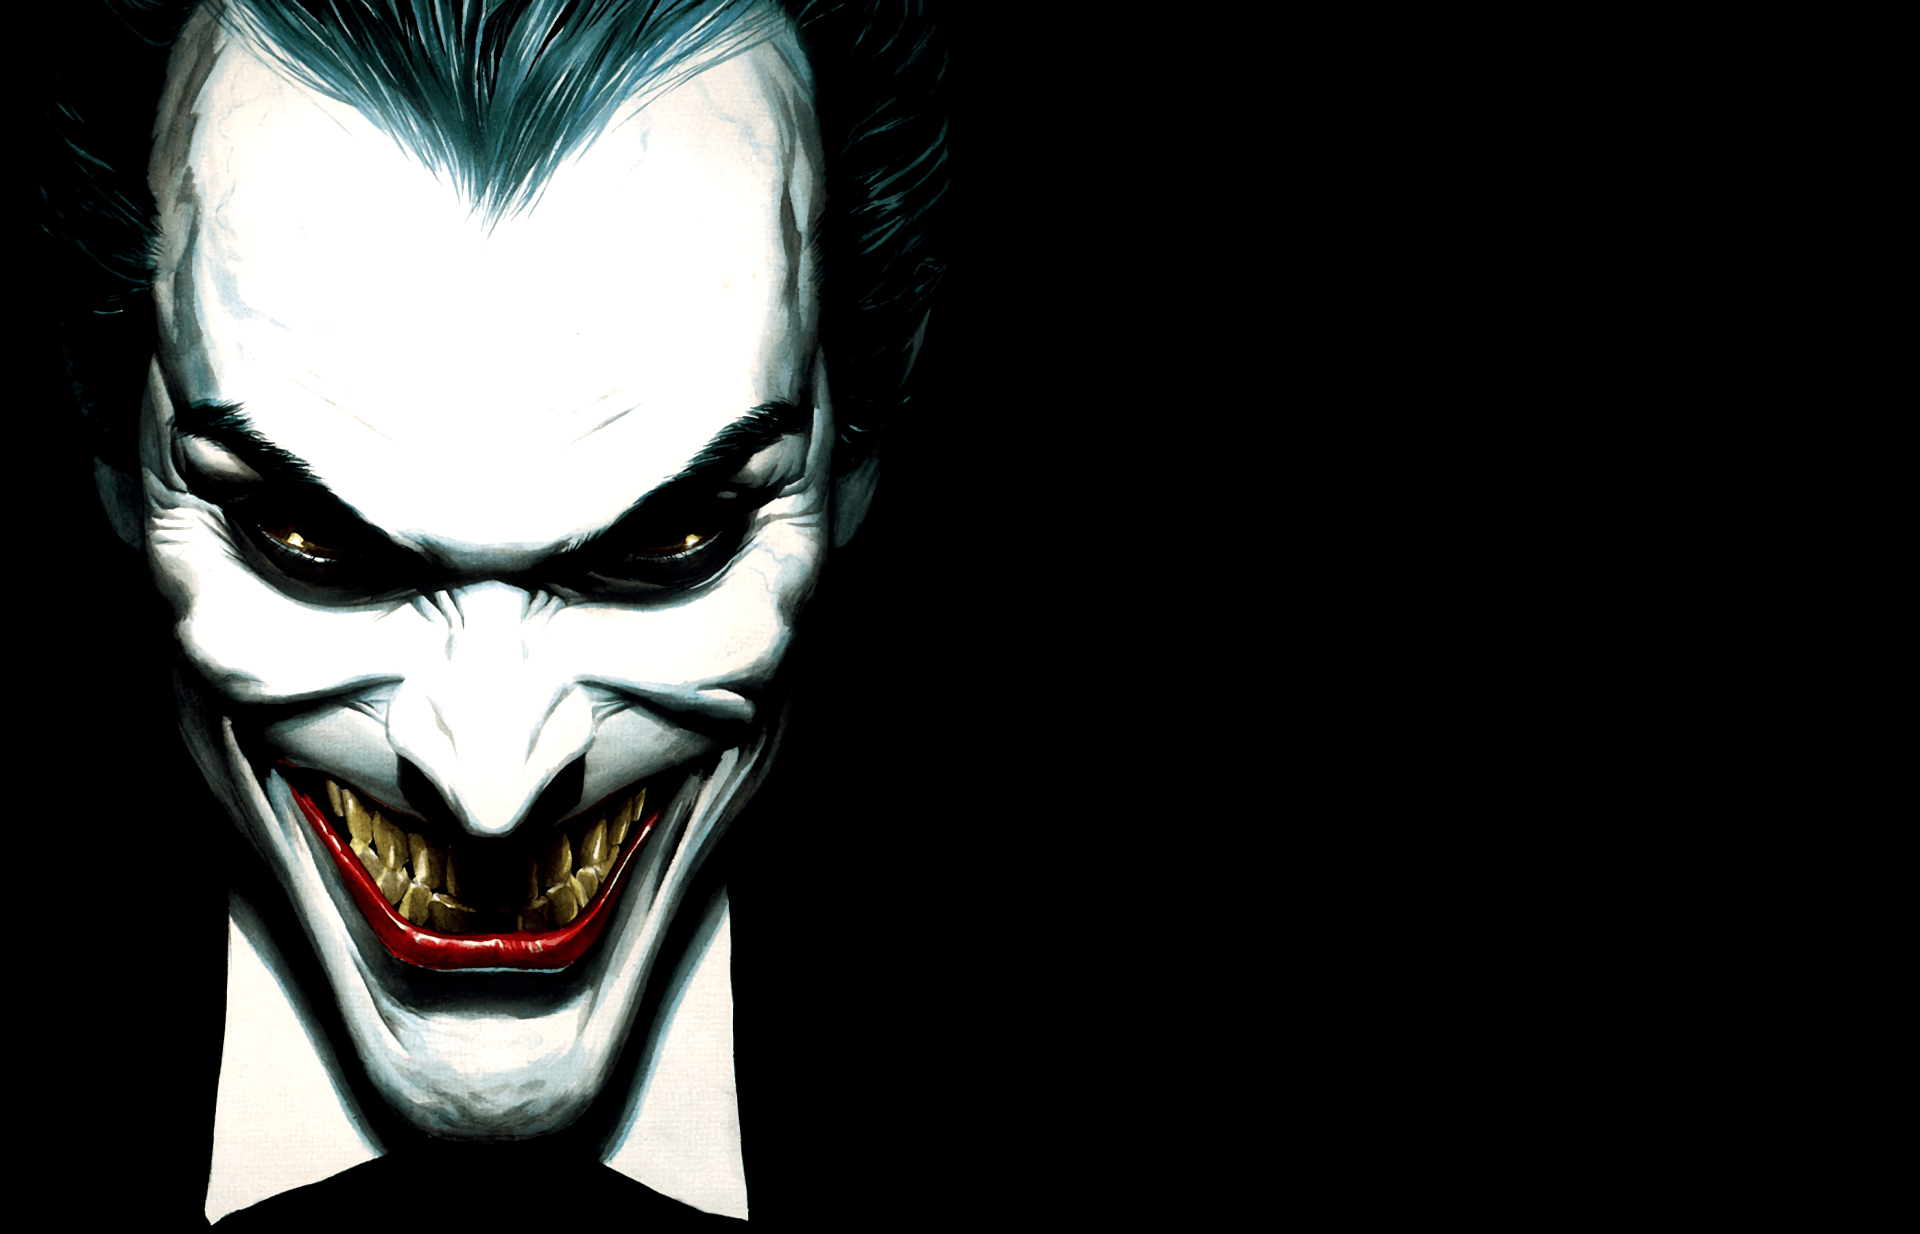 543 Joker HD Wallpapers | Backgrounds - Wallpaper Abyss